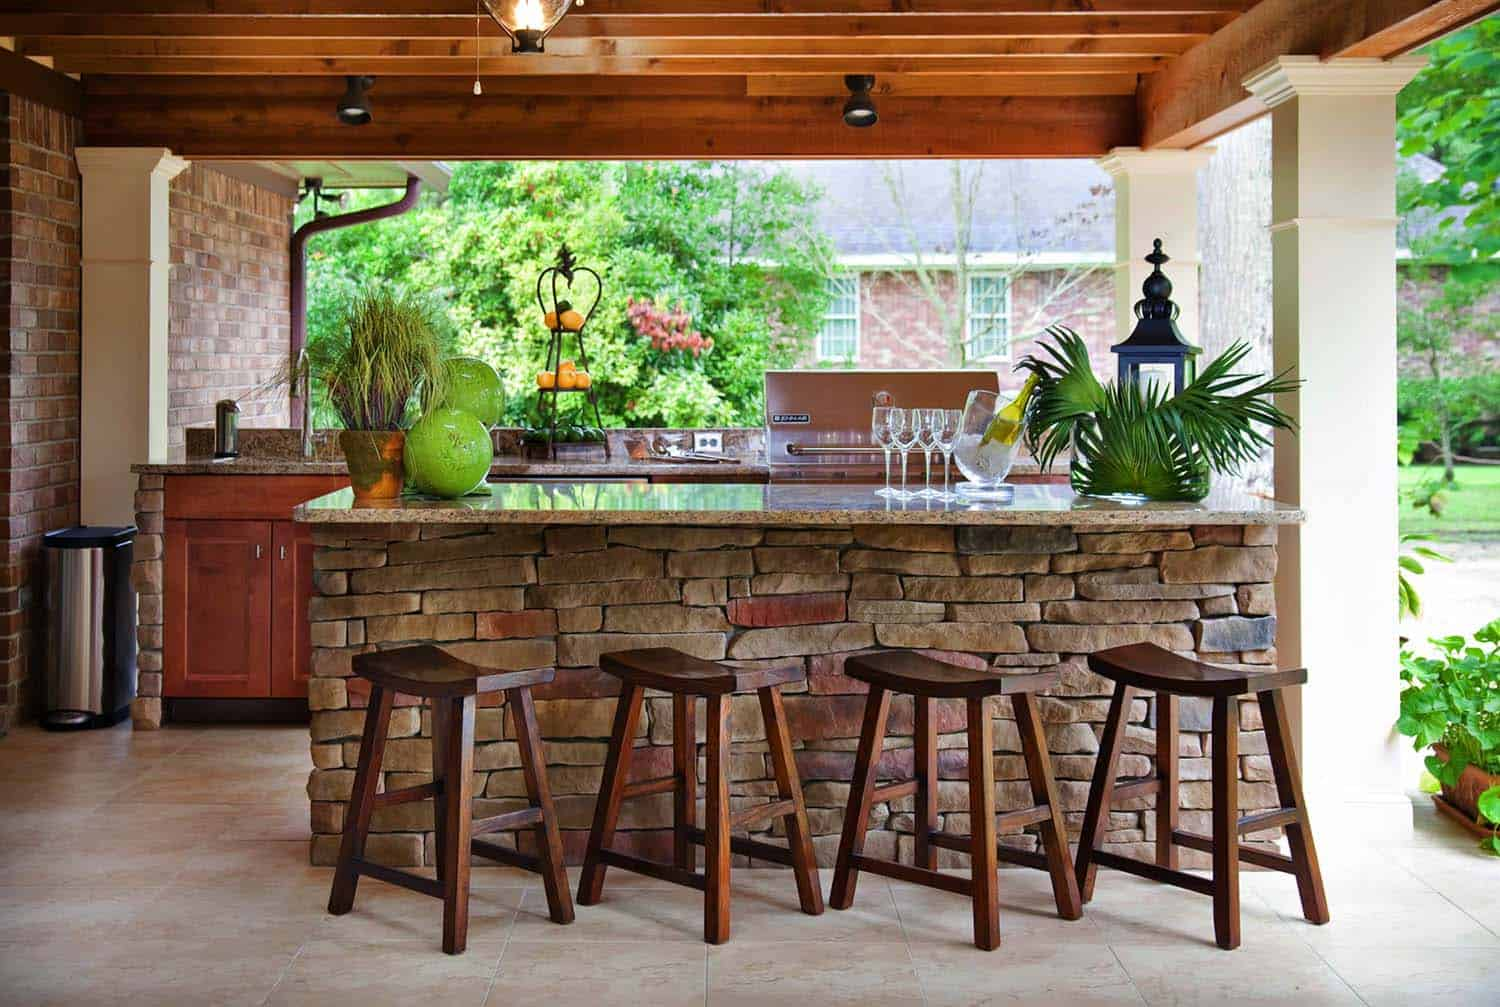 20 spectacular outdoor kitchens with bars for entertaining for Design your outdoor kitchen